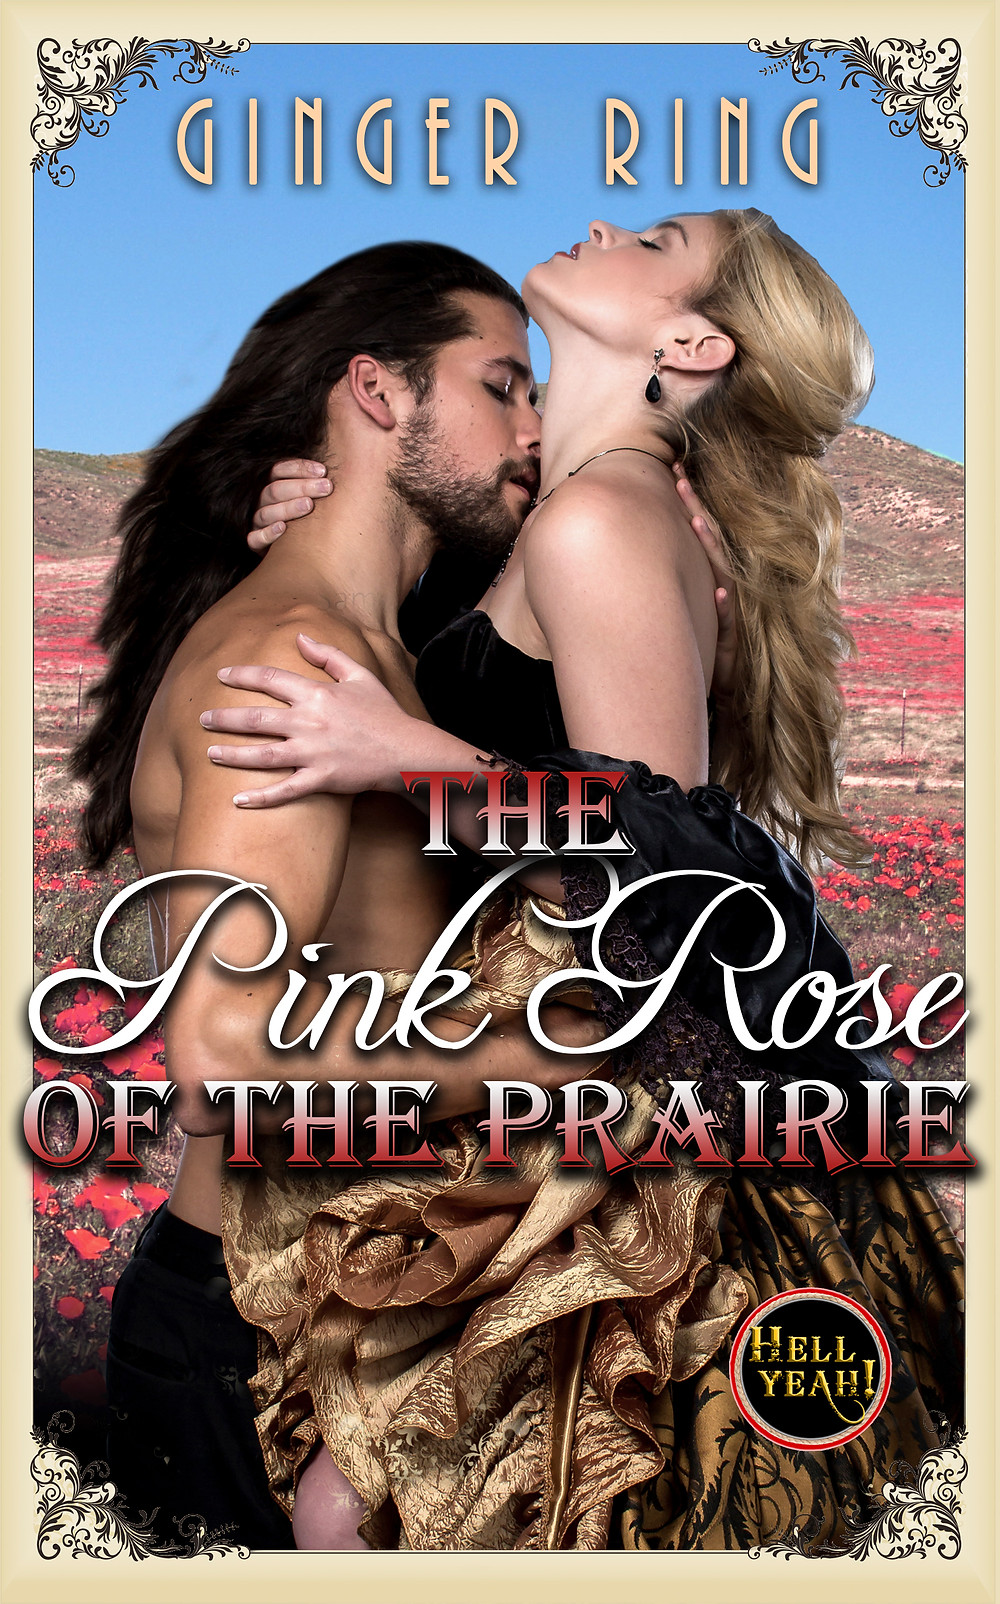 THE PINK ROSE OF THE PRAIRIE by Ginger Ring